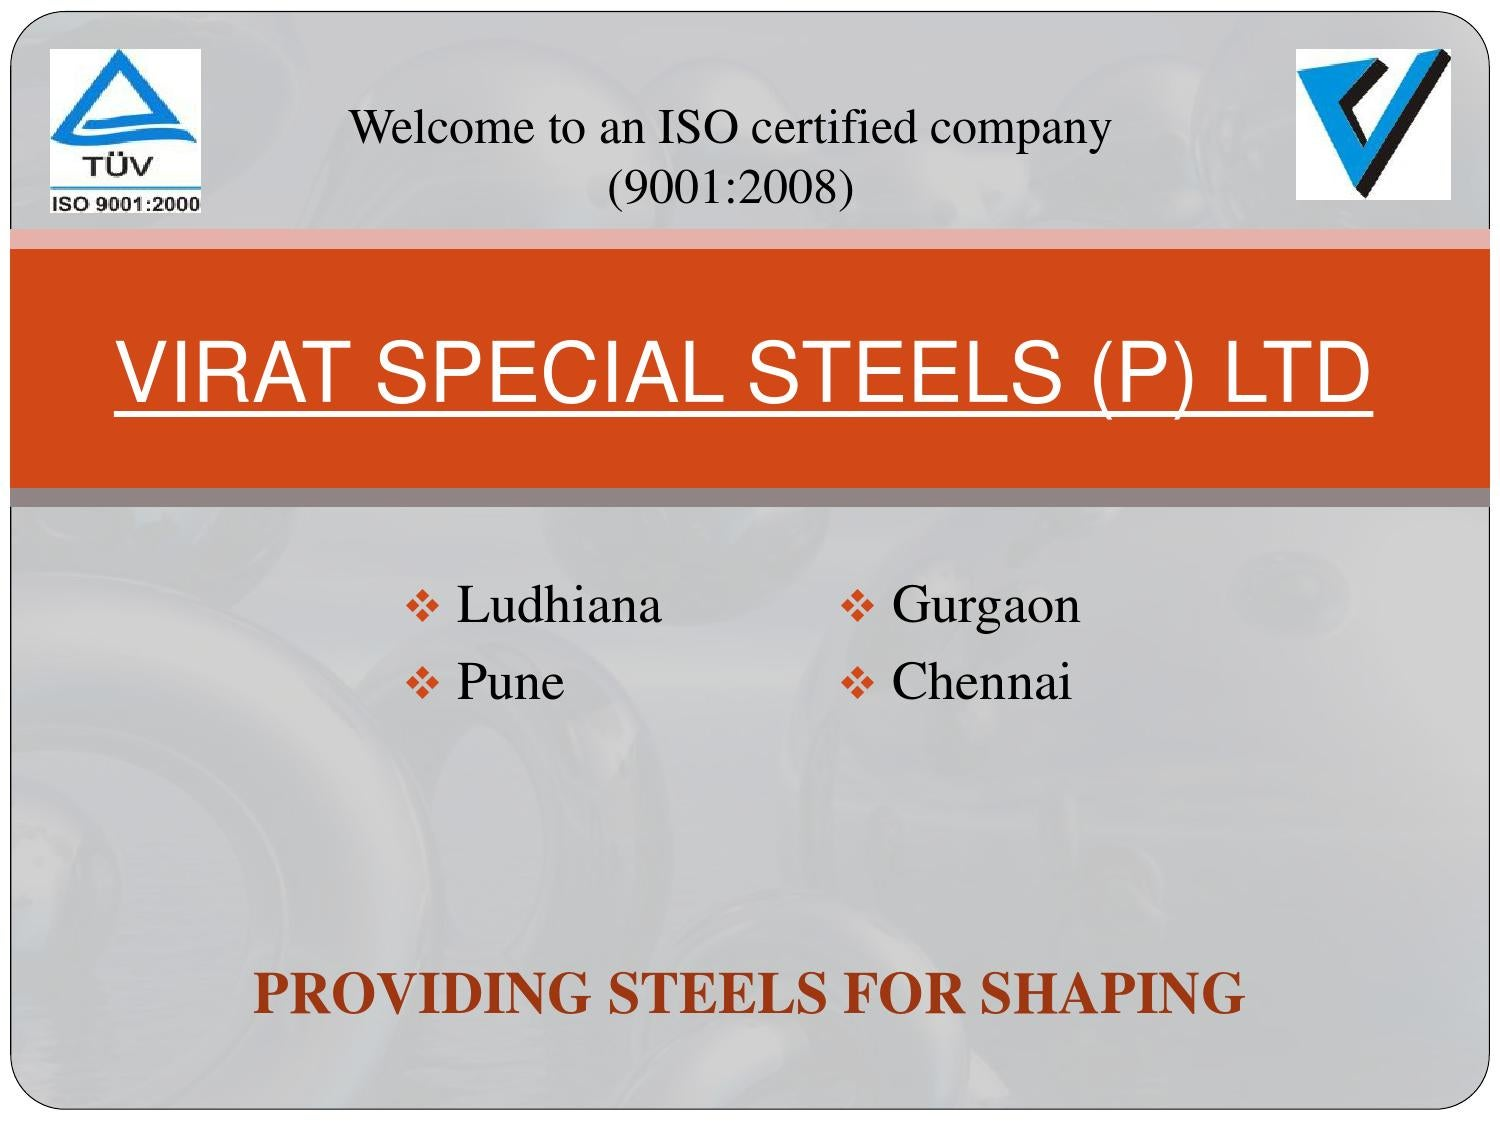 Virat special steels (p) limited by VIRAT SPECIAL STEELS (P